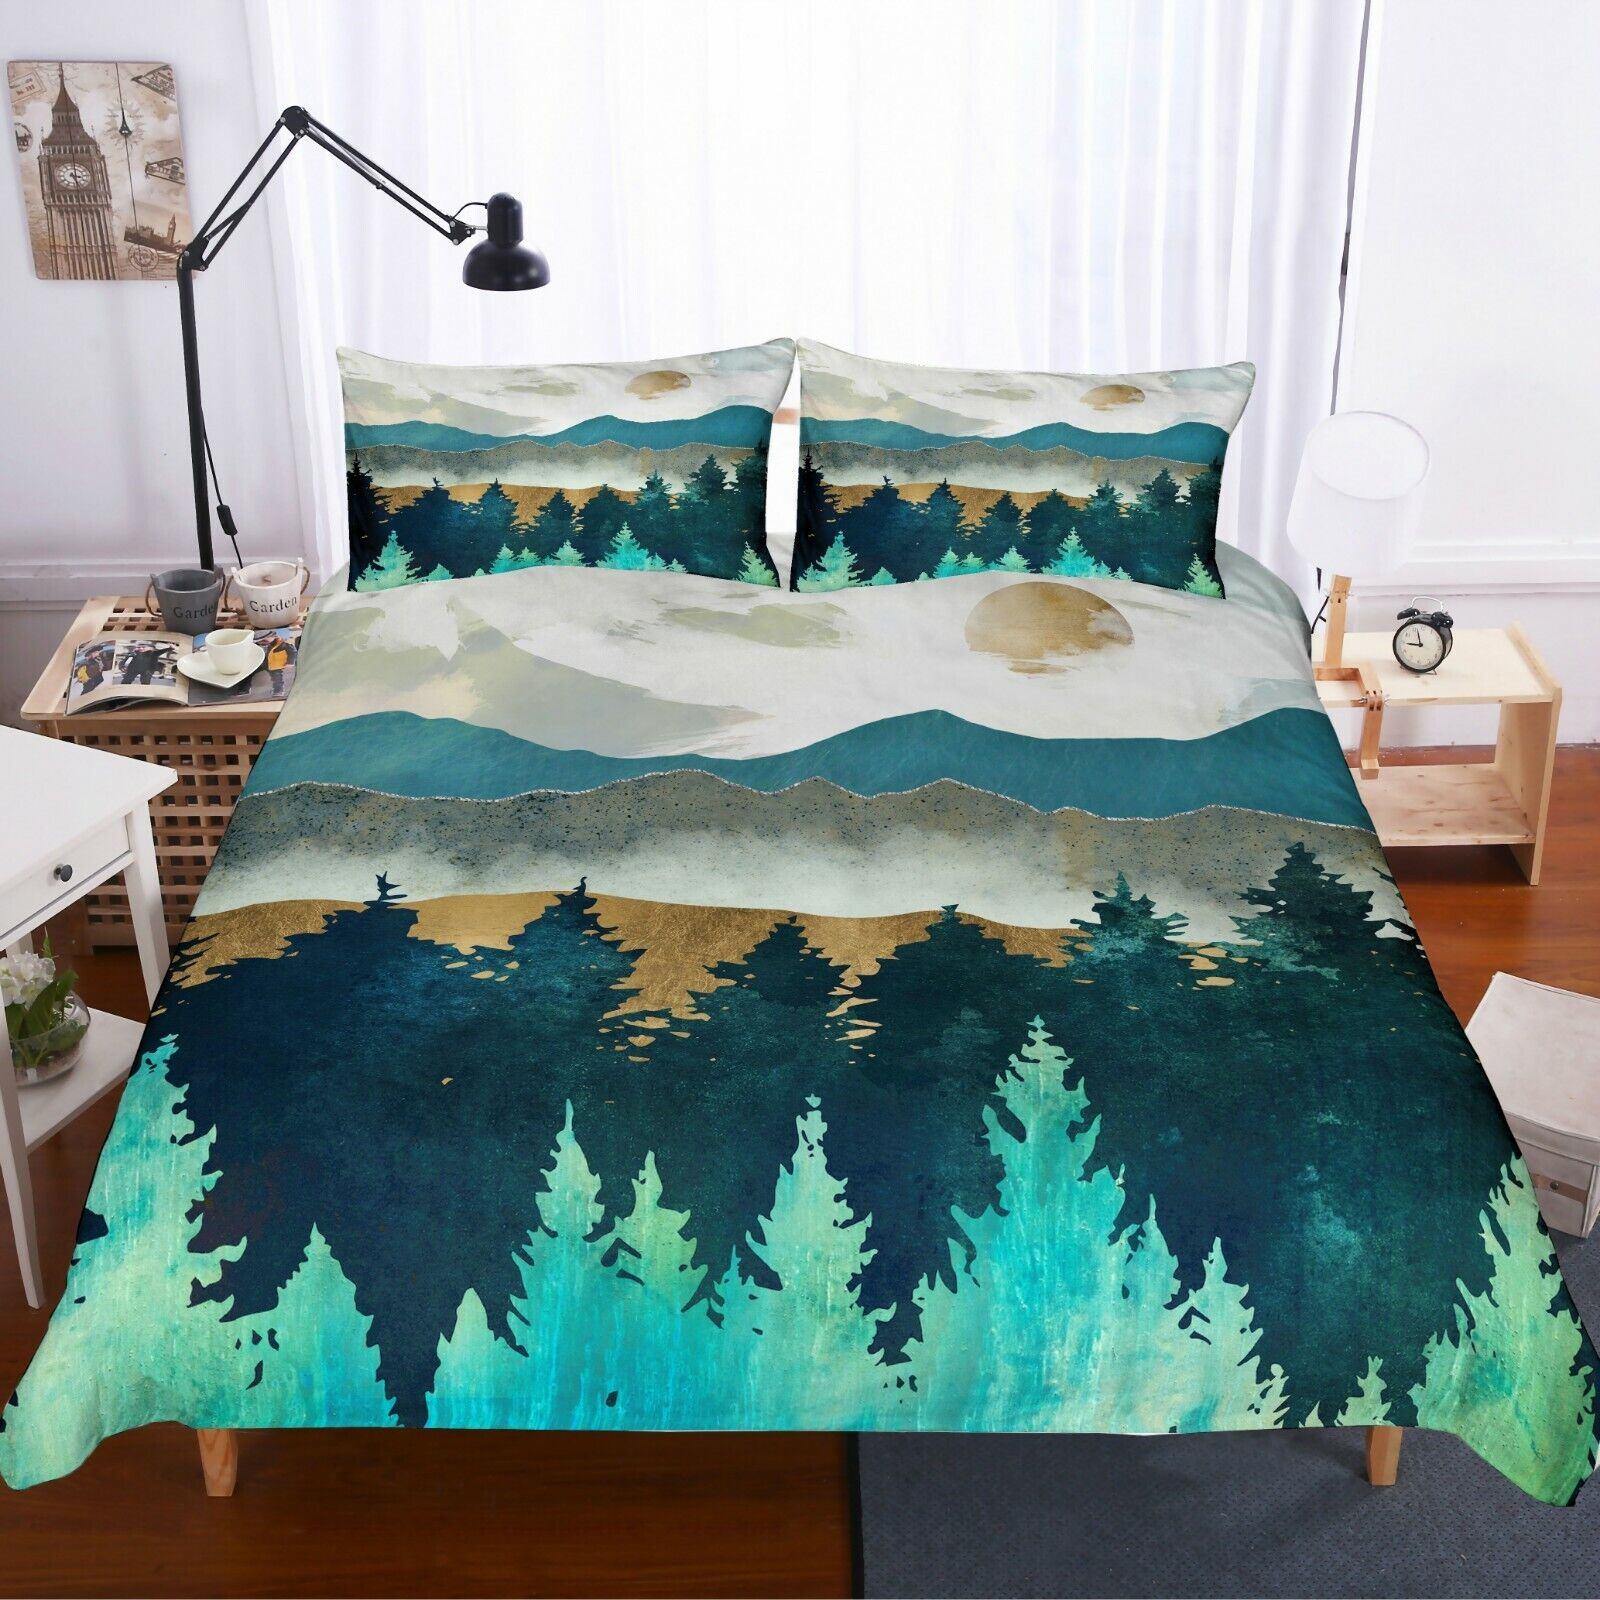 3D Abstract WaterColoreeeee Mountains Quilt Cover Set Bedding Duvet Cover Pillow 21